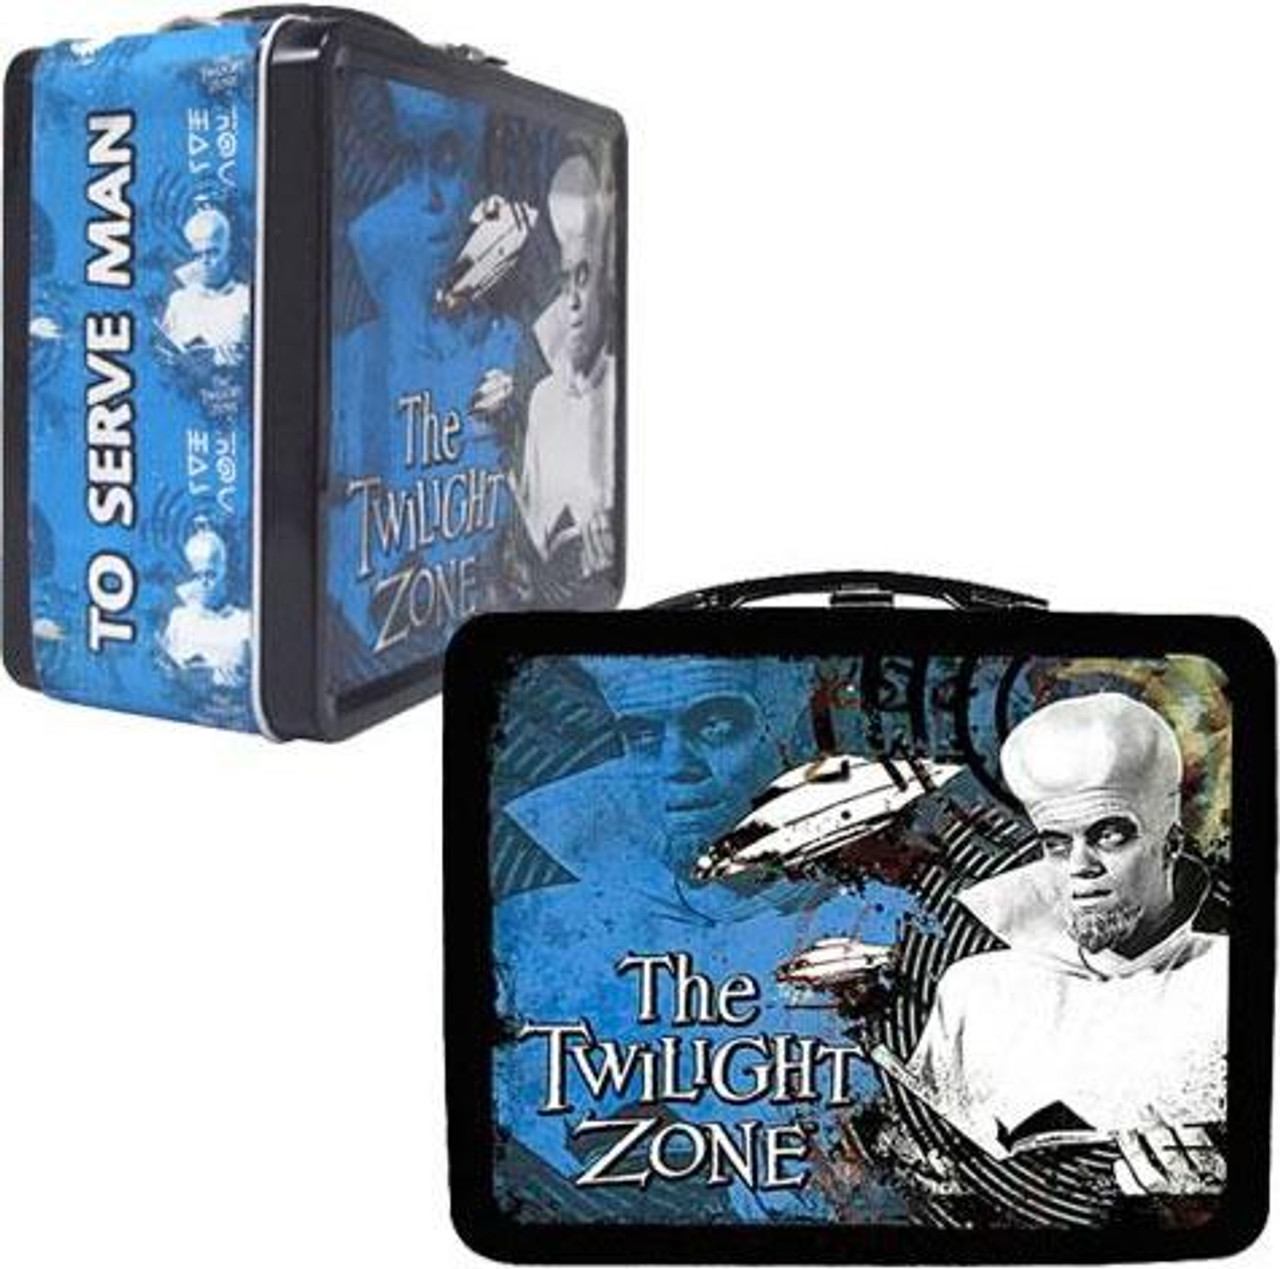 The Twilight Zone Kanamit Lunch Box